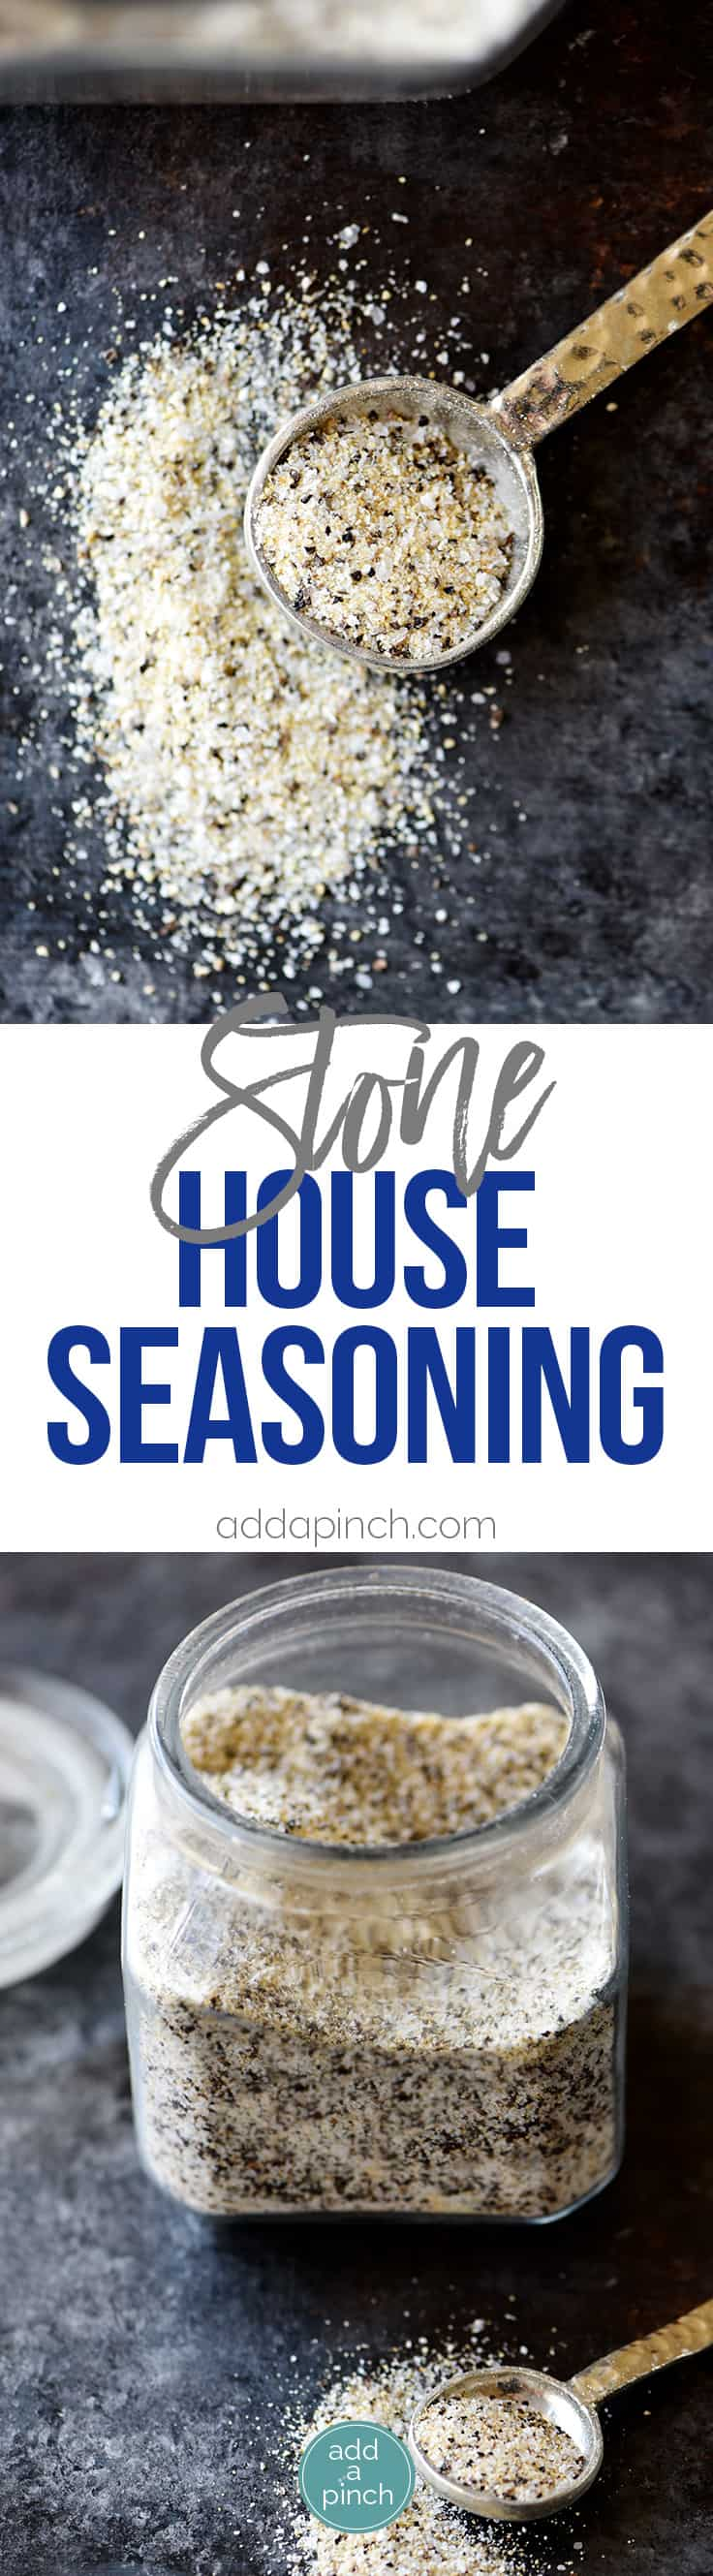 Stone House Seasoning Recipe - A quick, easy and delicious seasoning blend that adds so much flavor in a snap! // addapinch.com